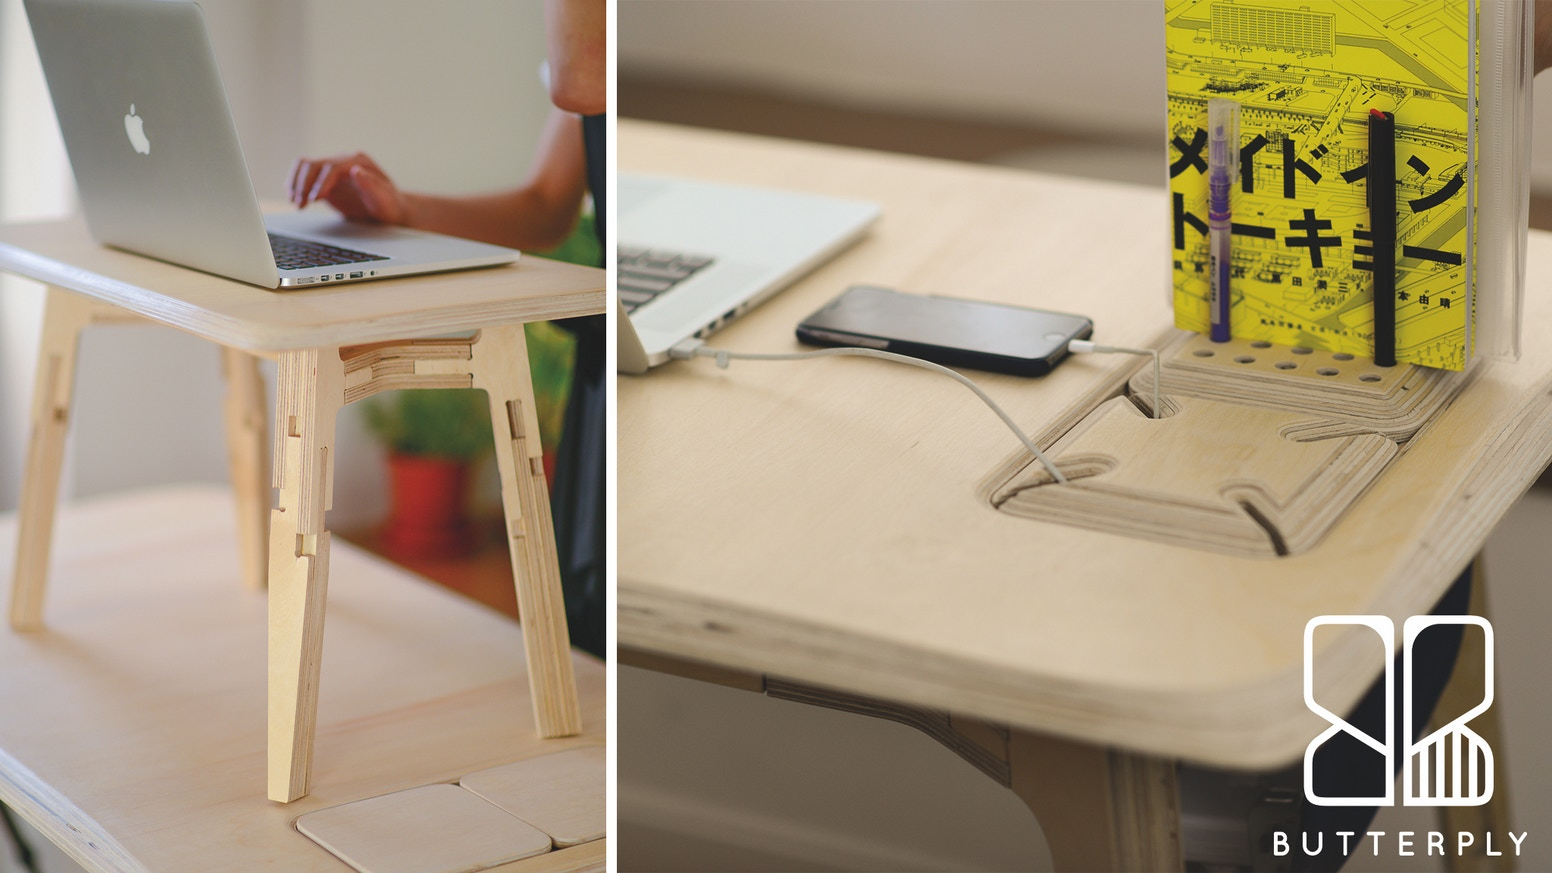 Butterply Desk - Artfully Crafted Multi-functional Furniture